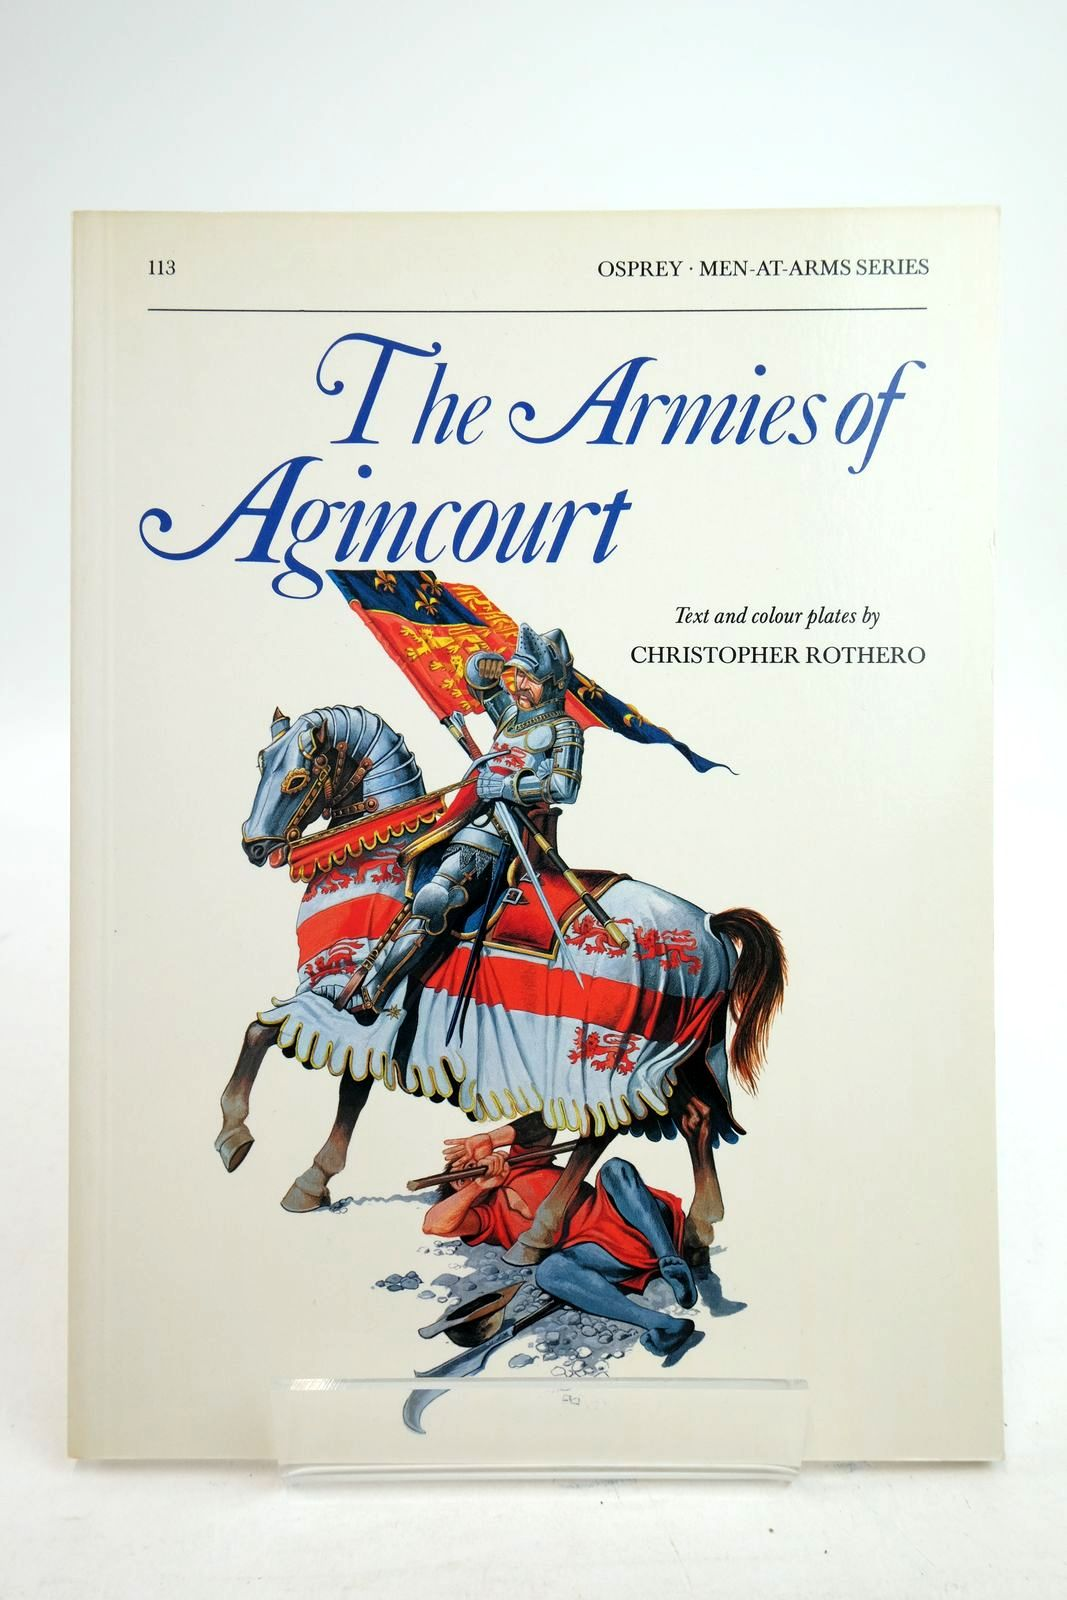 Photo of THE ARMIES OF AGINCOURT (MEN-AT-ARMS) written by Rothero, Christopher illustrated by Rothero, Christopher published by Osprey Publishing (STOCK CODE: 2134735)  for sale by Stella & Rose's Books